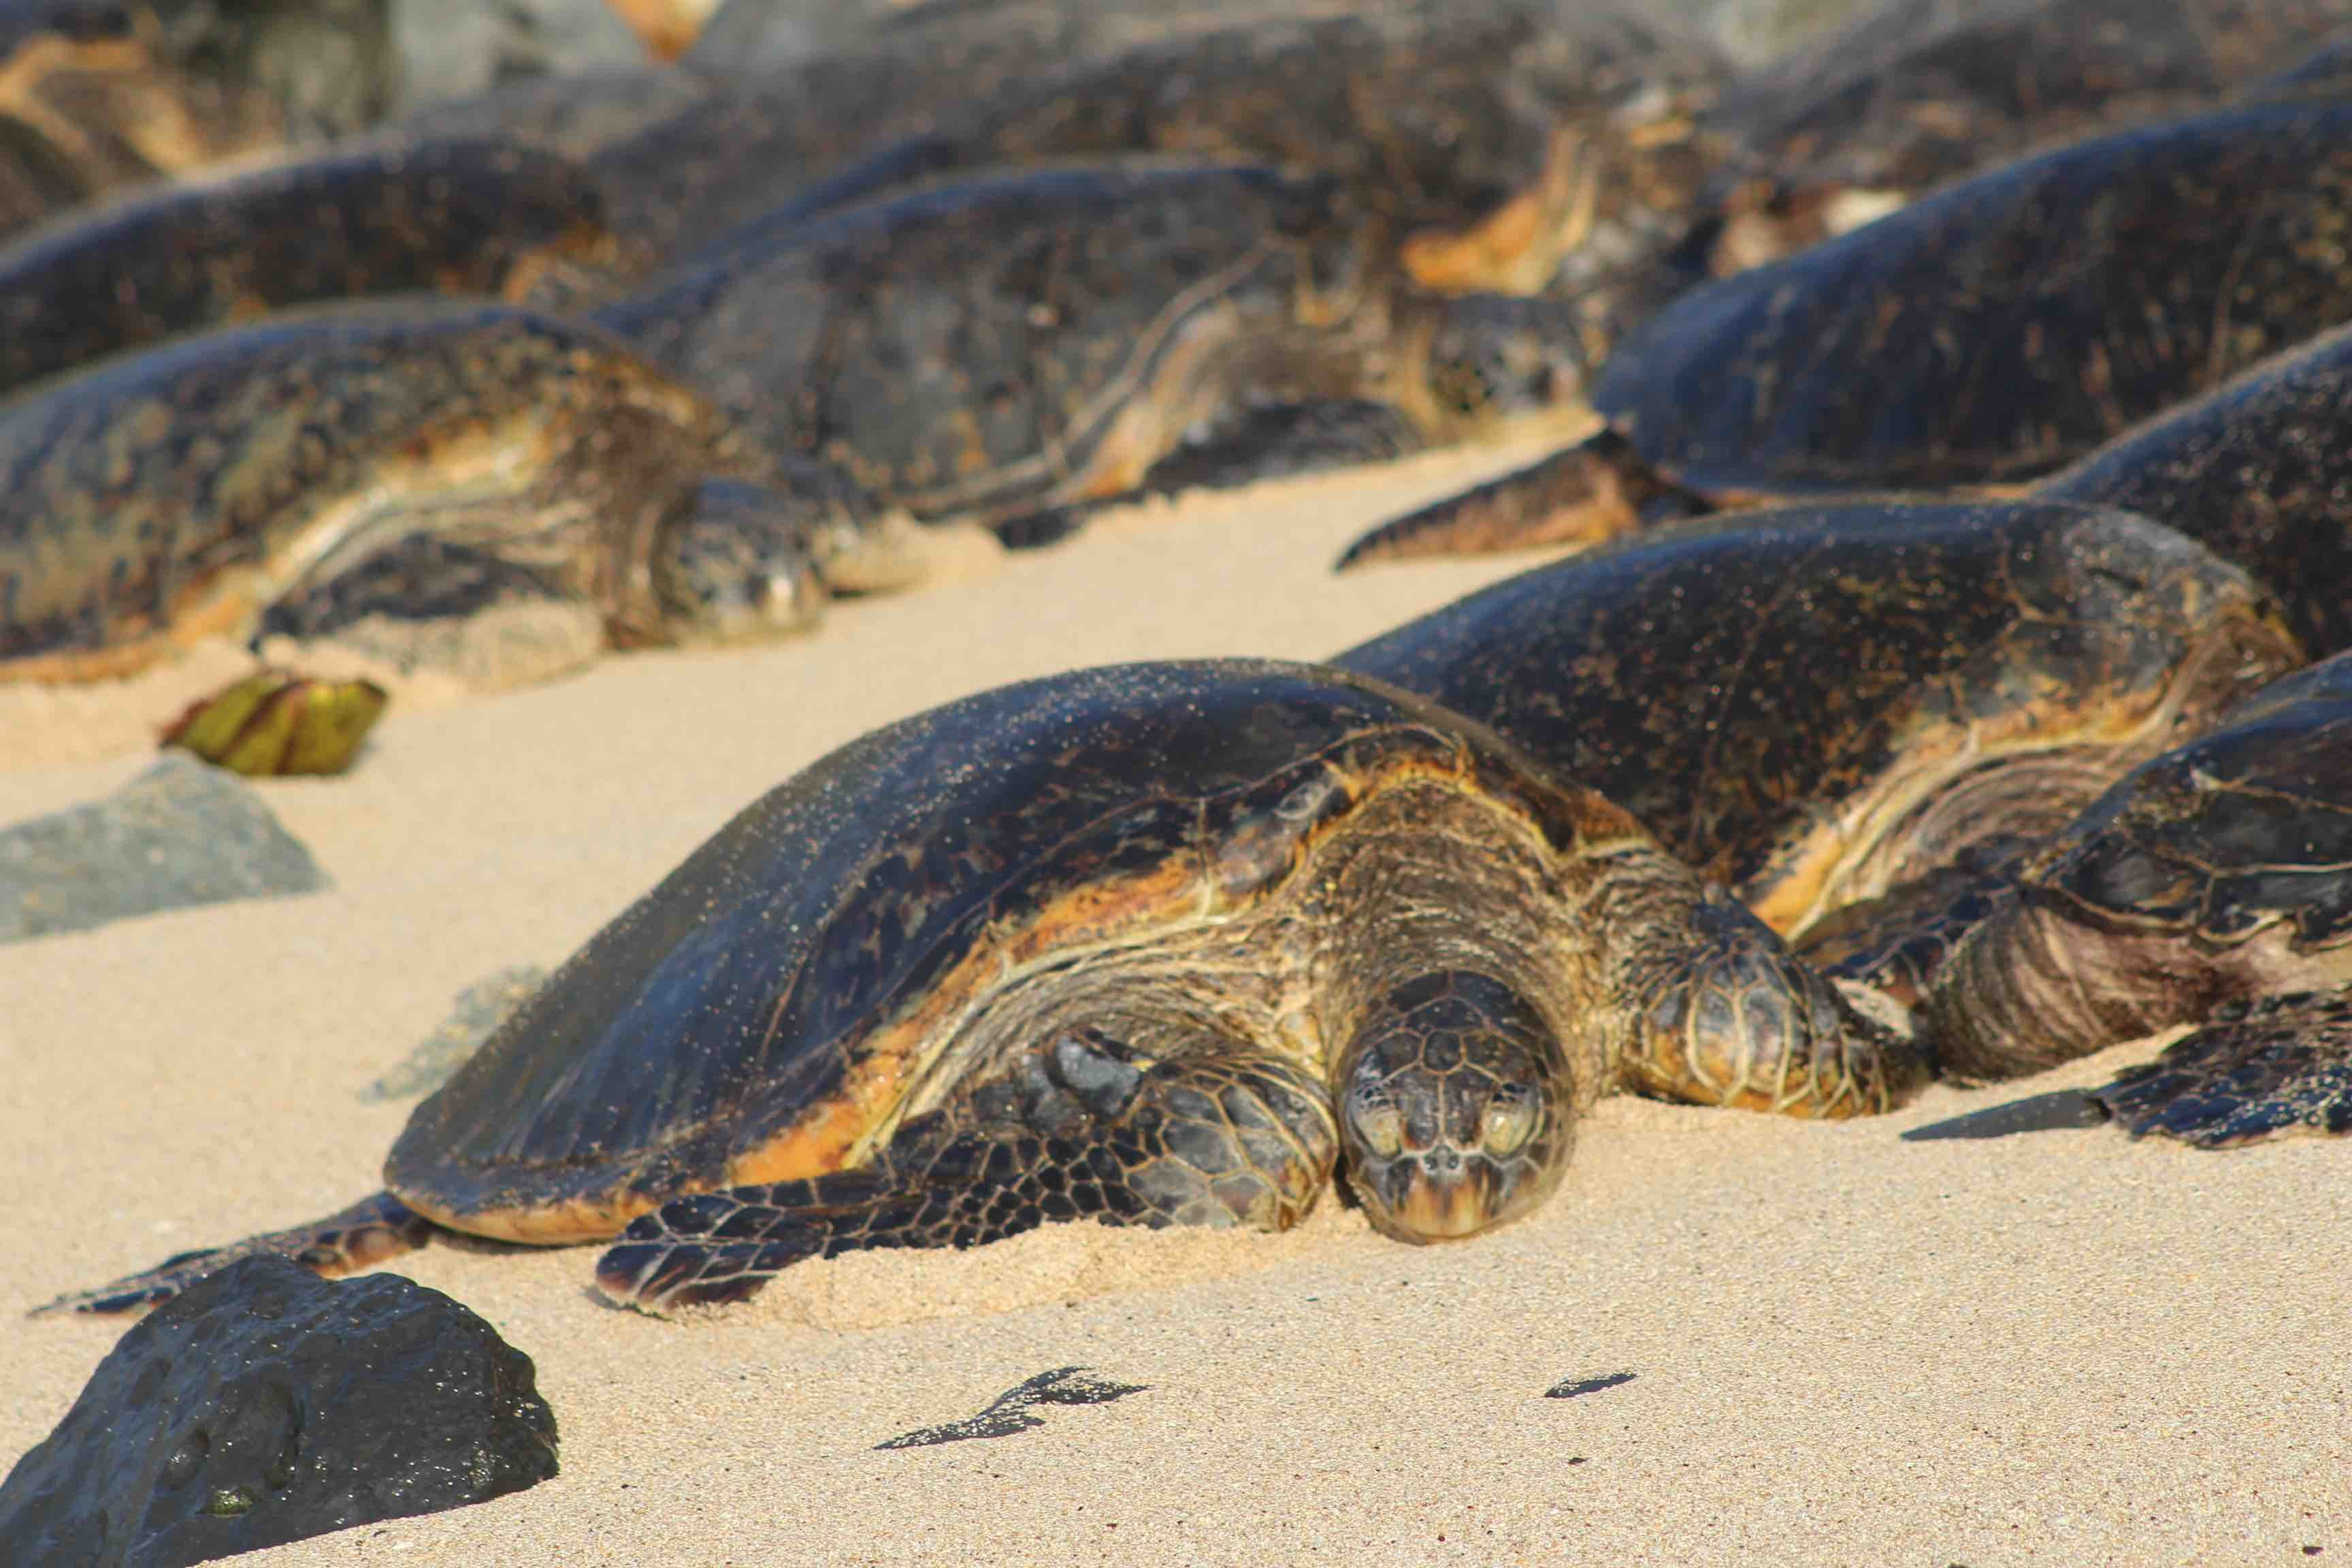 Big sea turtles on the beach, Maui Hawaii